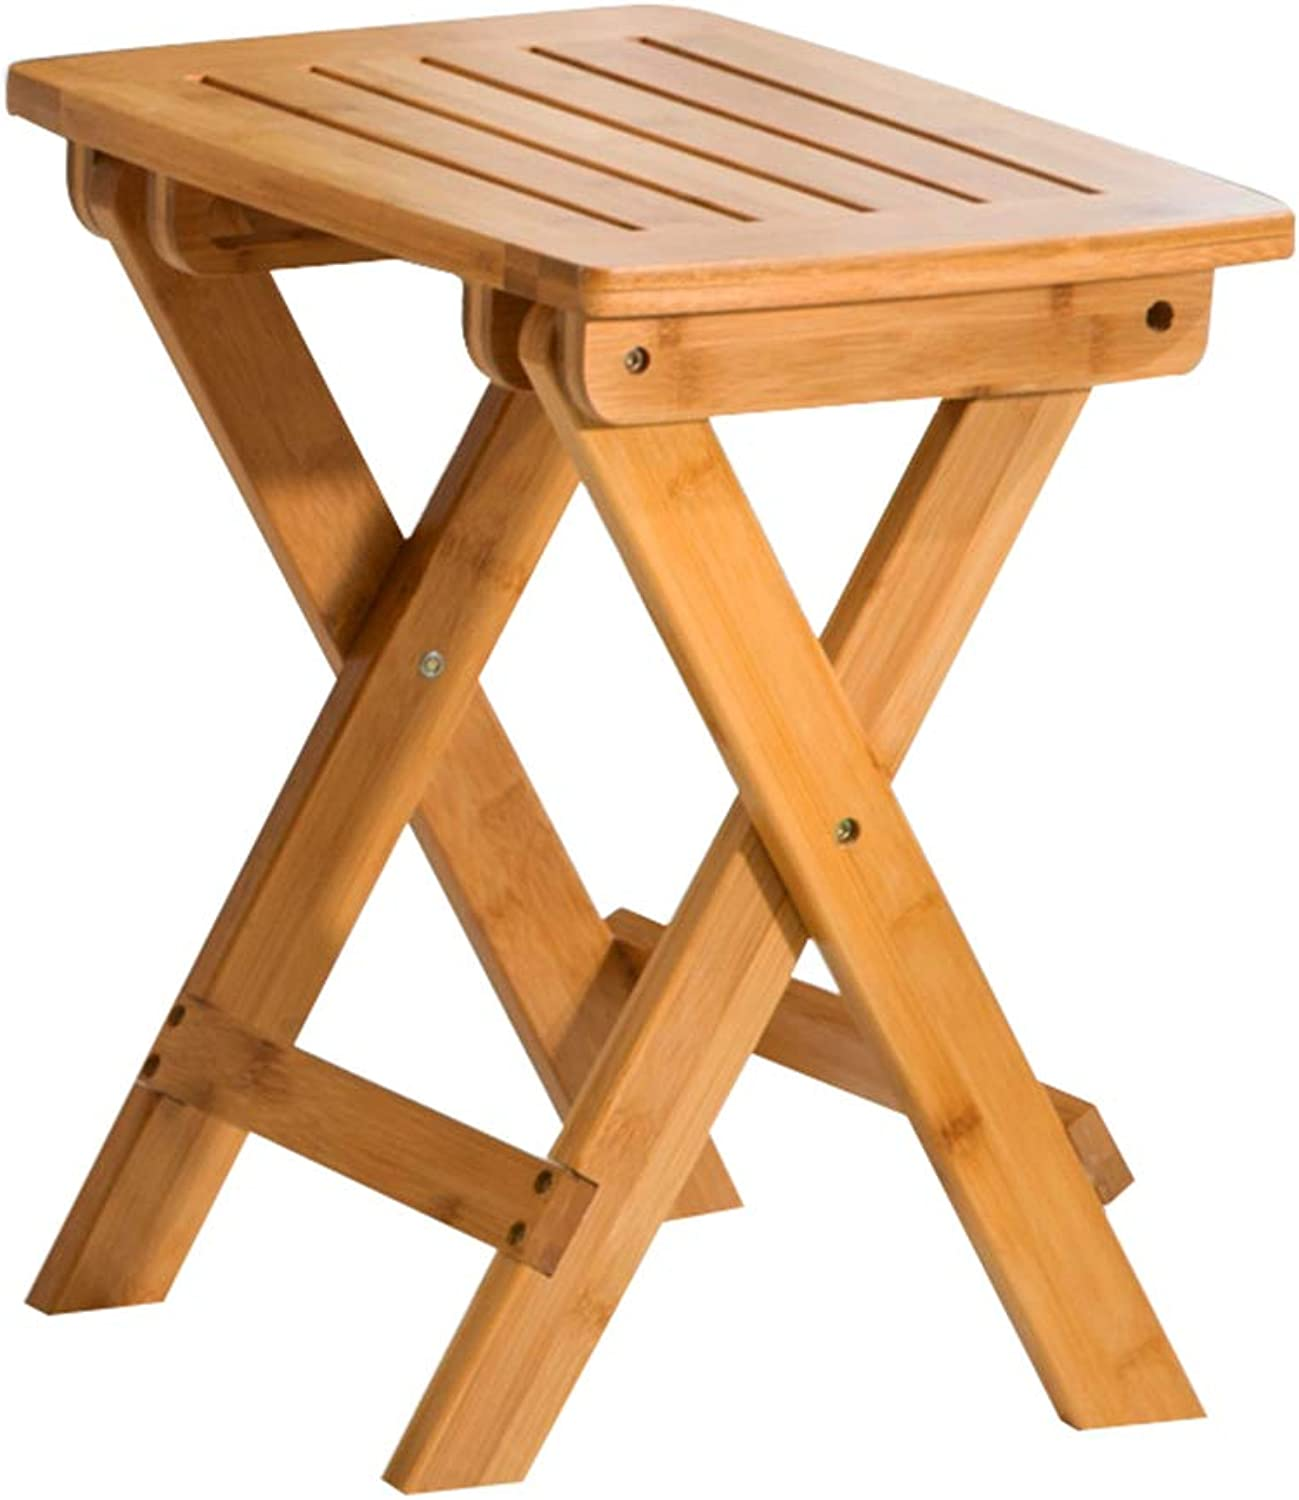 Stool - Folding Chair, Small Bench for Home, Bamboo Dining Chair Portable Stool Modern Simple Wooden Bench (color   A, Size   33  25  35cm)